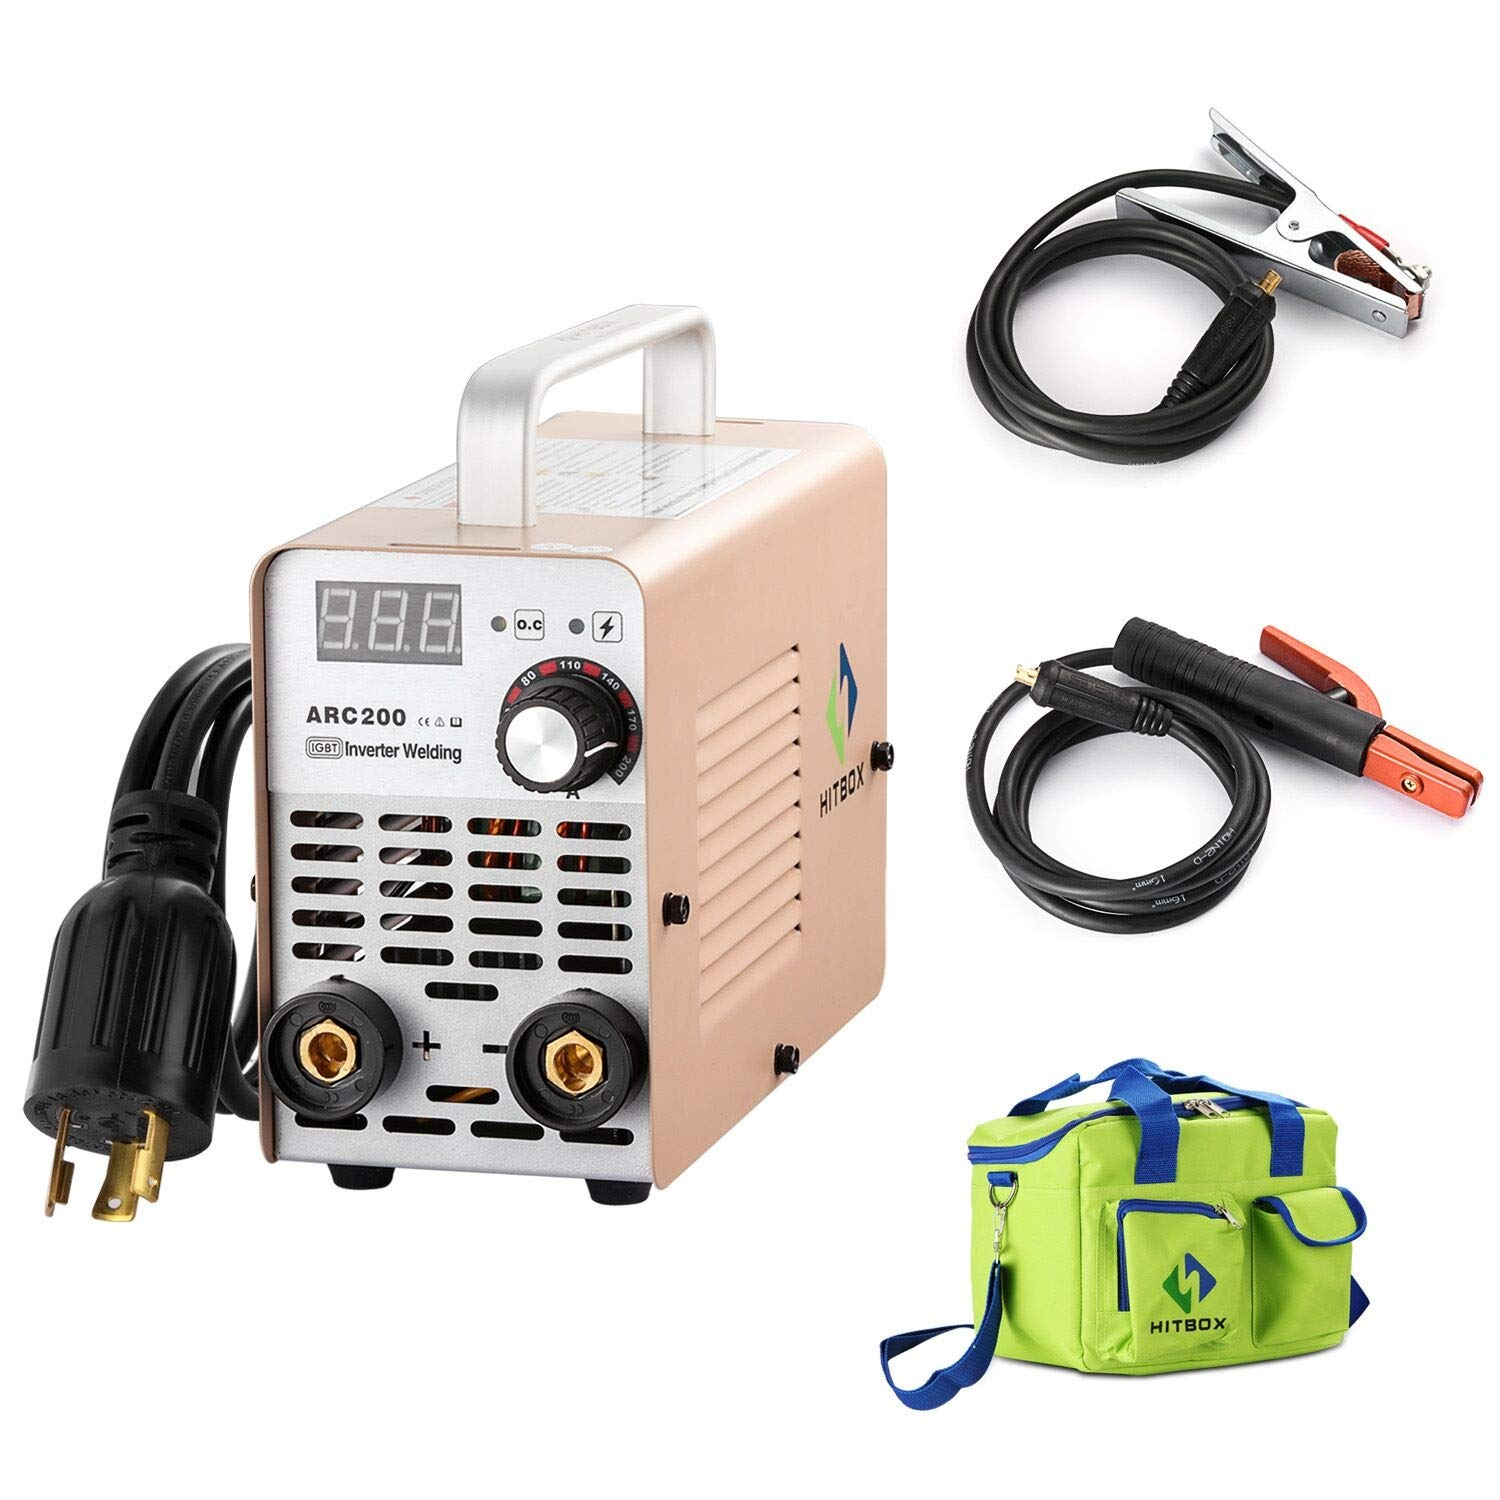 Hitbox Arc Welder 200a Stick Dc 220v Inverter Welding Machine Mma200 Wiring Diagram Outlet Zx7 Rod Portable Complete Package Ready To Use